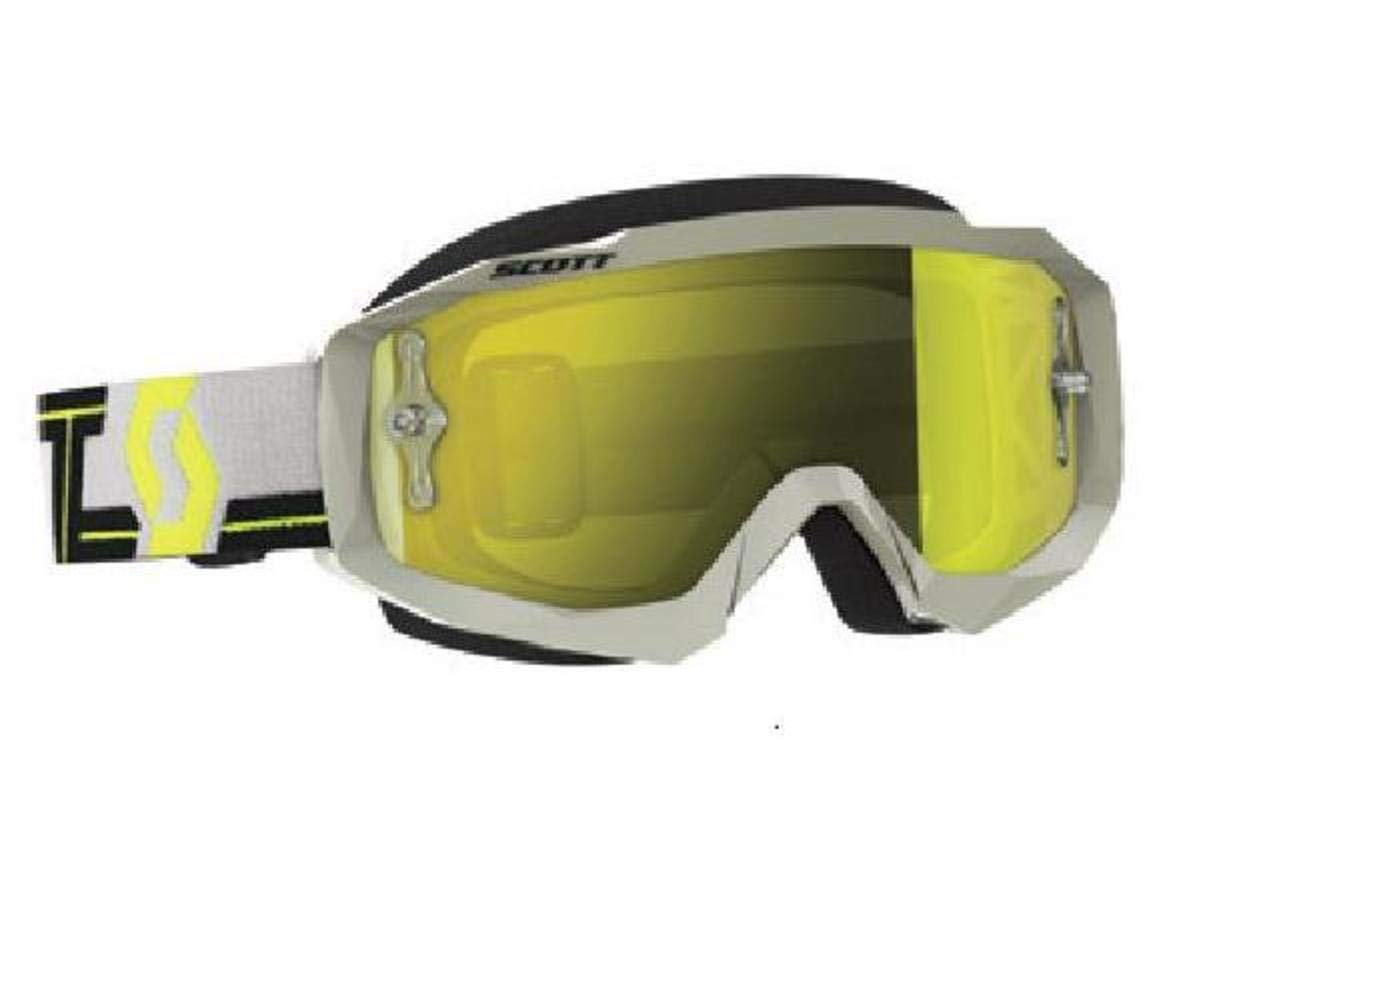 Scott Hustle MX Adult Off-Road Motorcycle Goggles - Grey/Yellow/Chrome/One Size